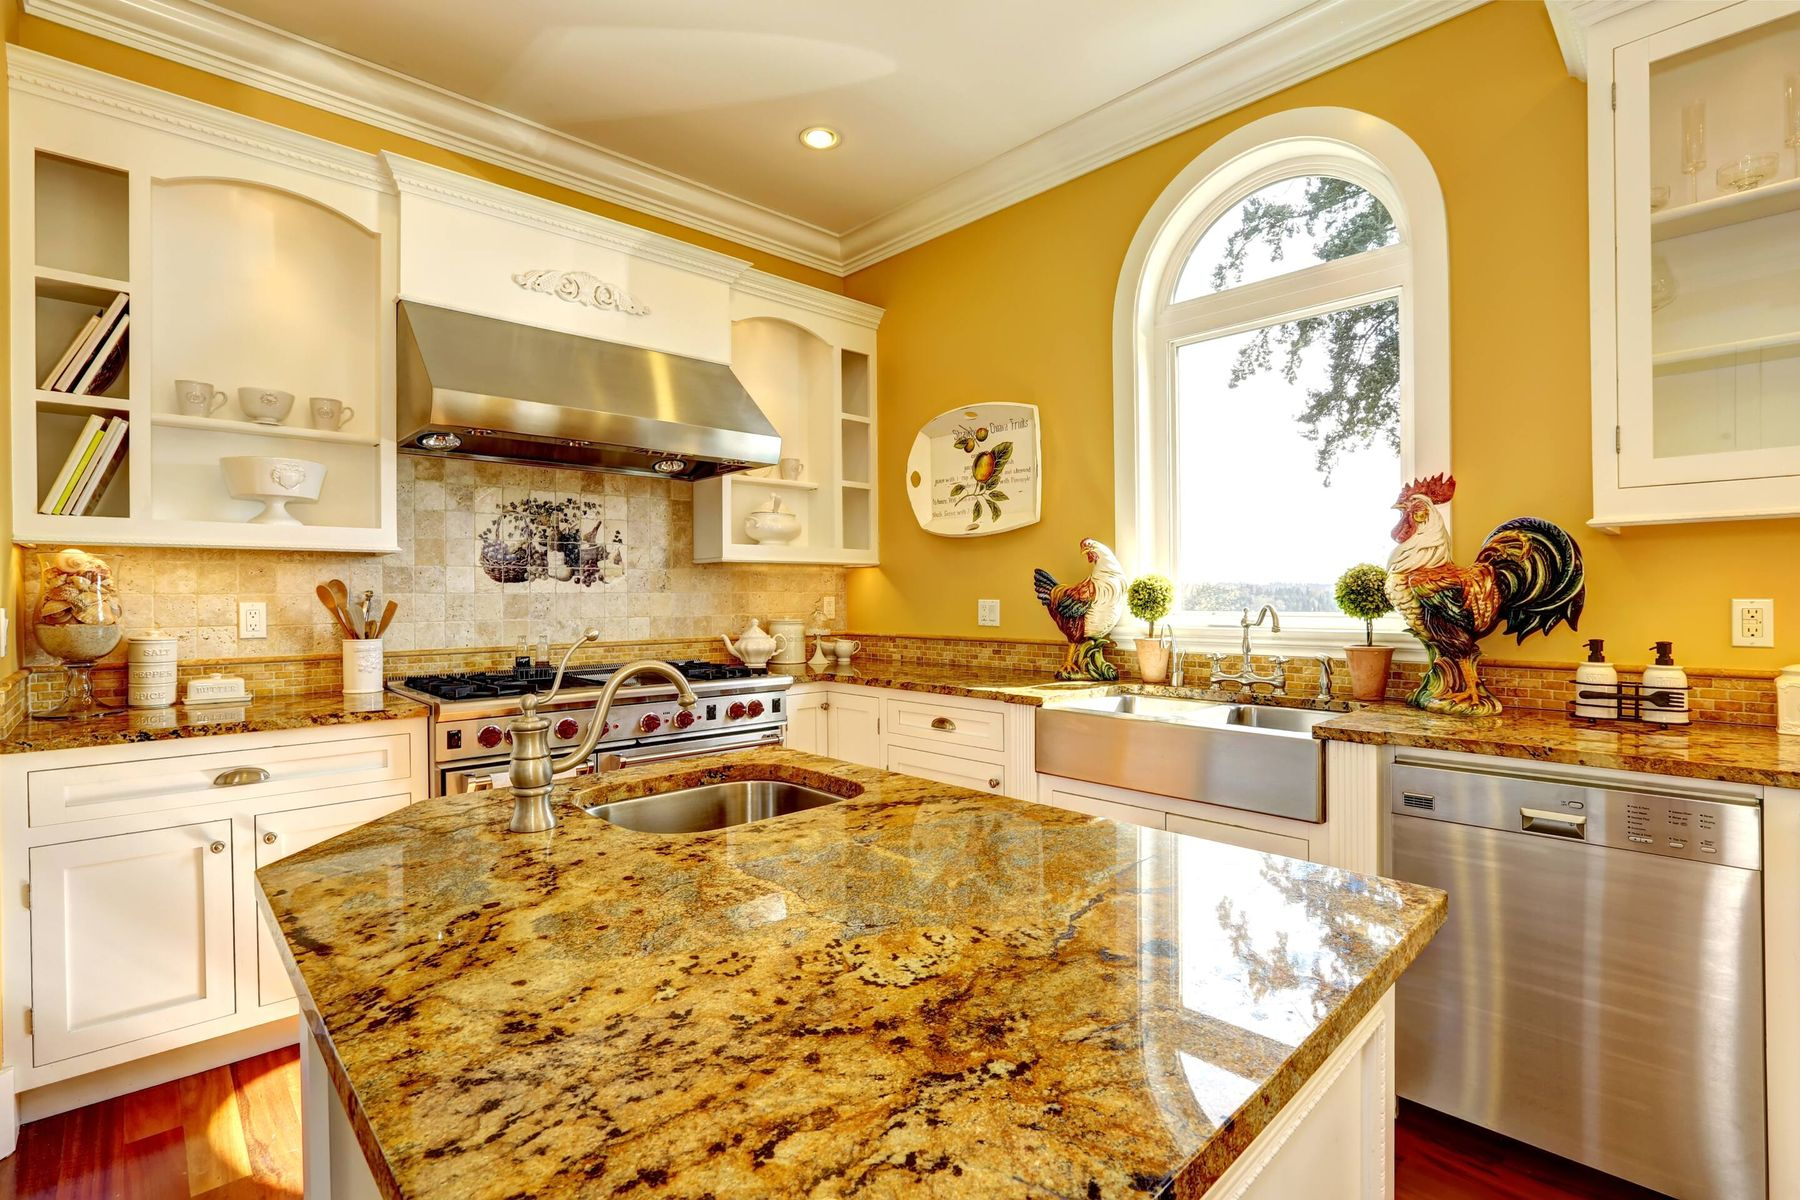 How to clean your granite platform like a pro